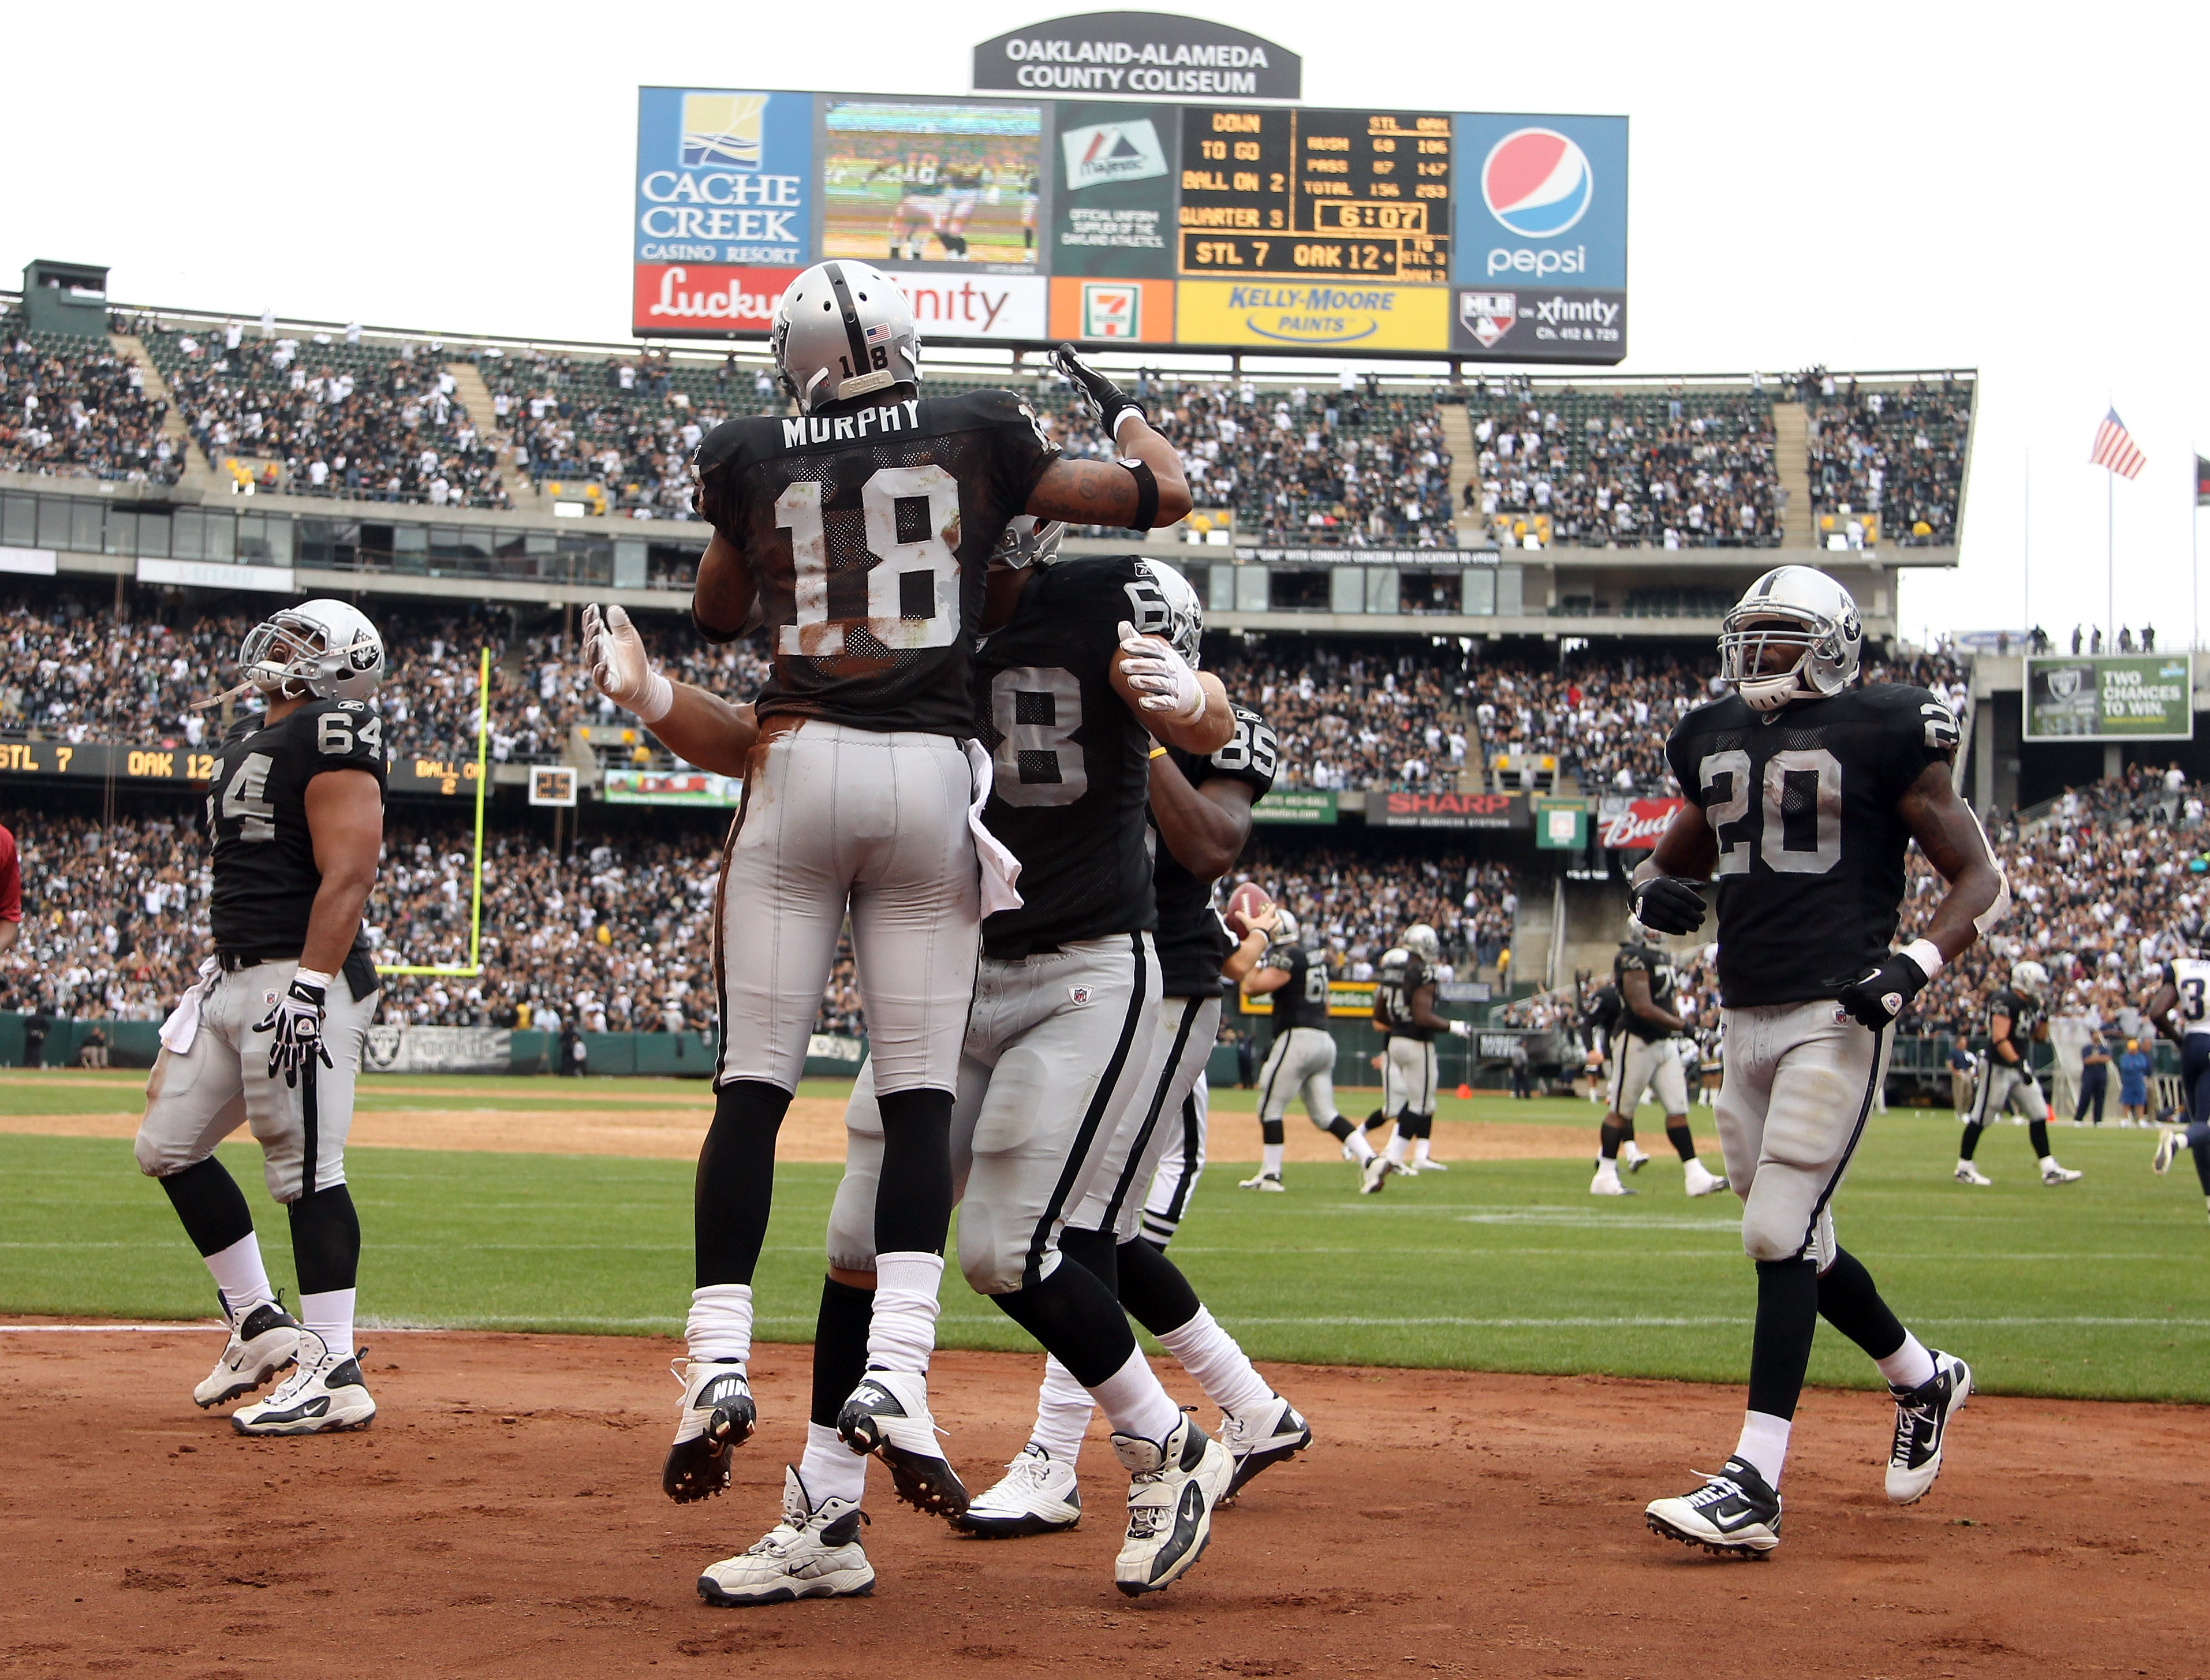 OAKLAND, CA - SEPTEMBER 19:  Louis Murphy #18 of the Oakland Raiders is congratulated by teammates after he scored a touchdown during their game against the St. Louis Rams at the Oakland-Alameda County Coliseum on September 19, 2010 in Oakland, California